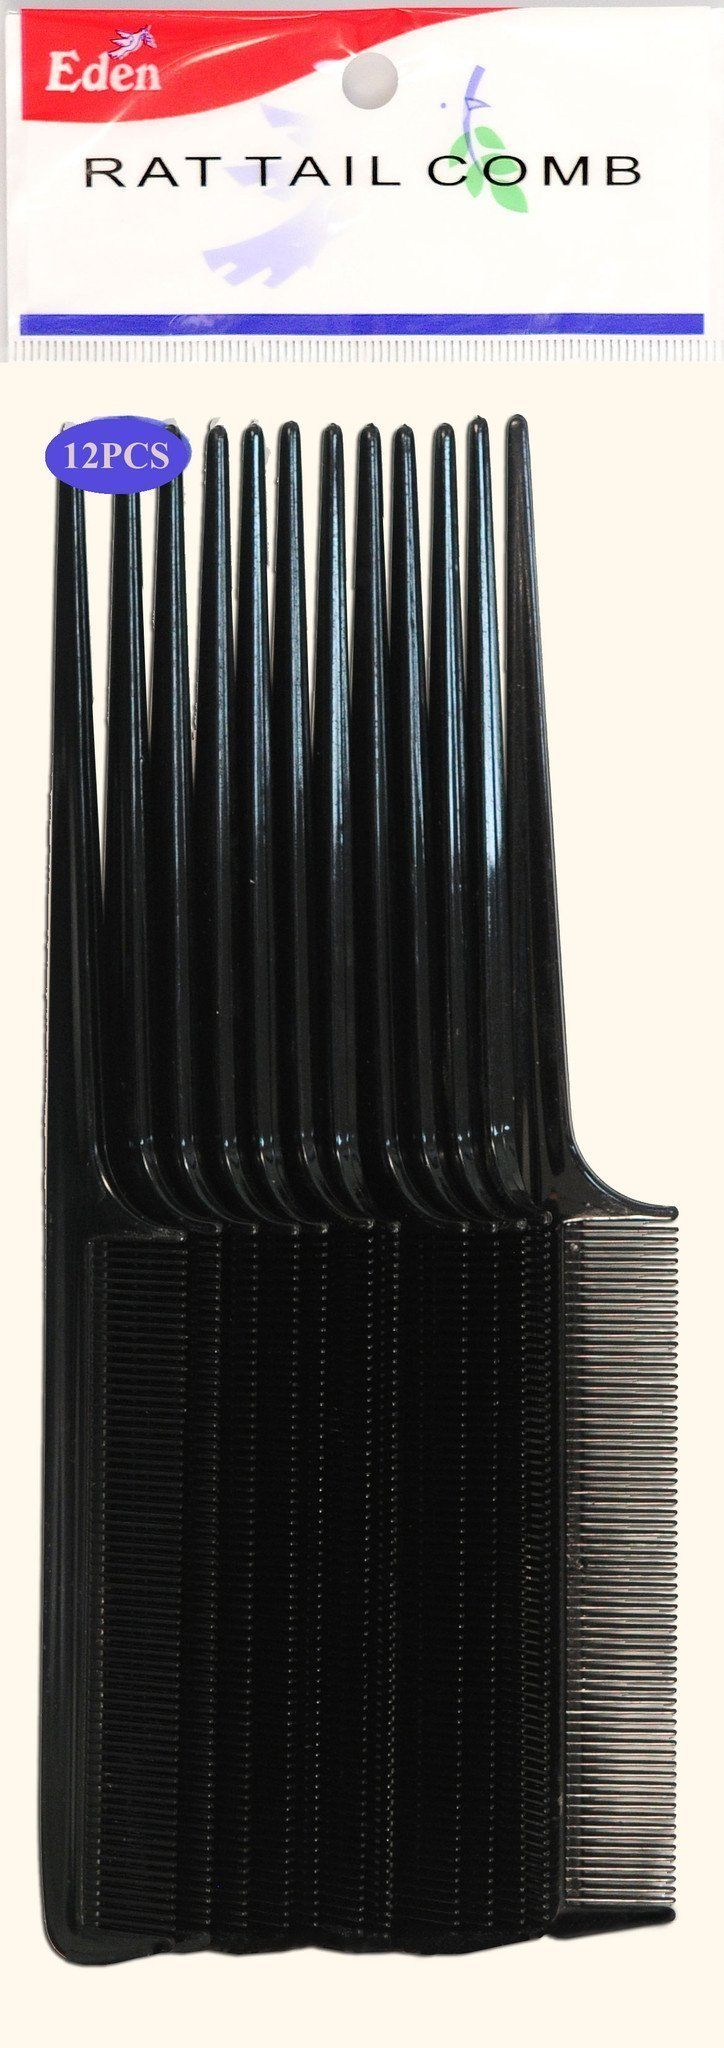 #10112 Eden 12pc Black Rat Tail Comb